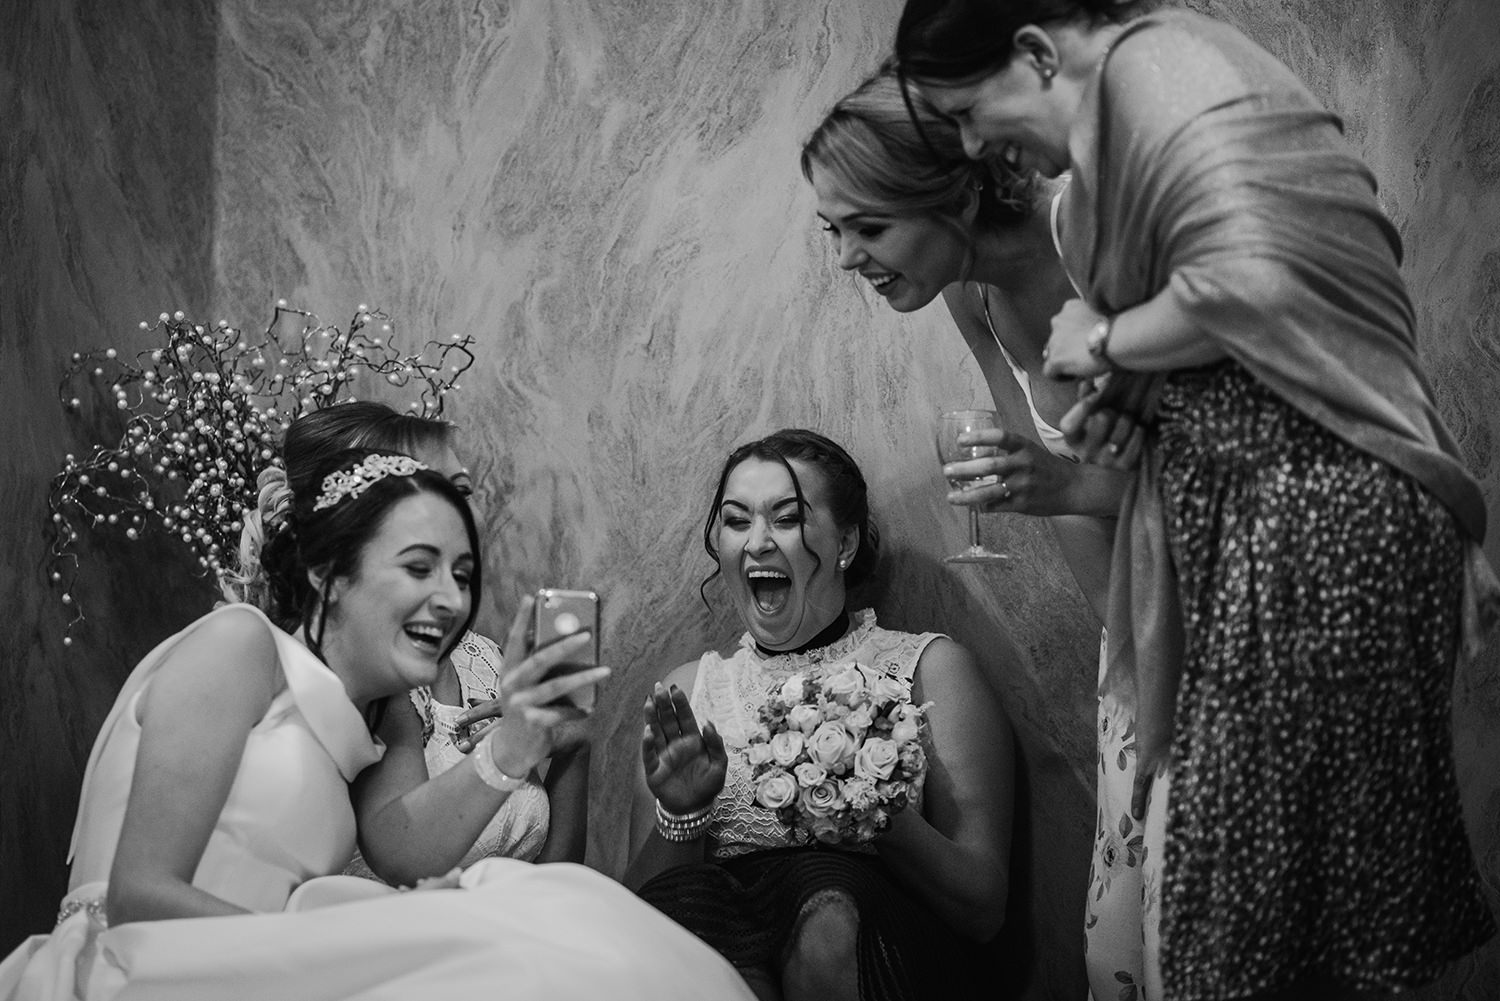 girls laughing at something on a phone screen